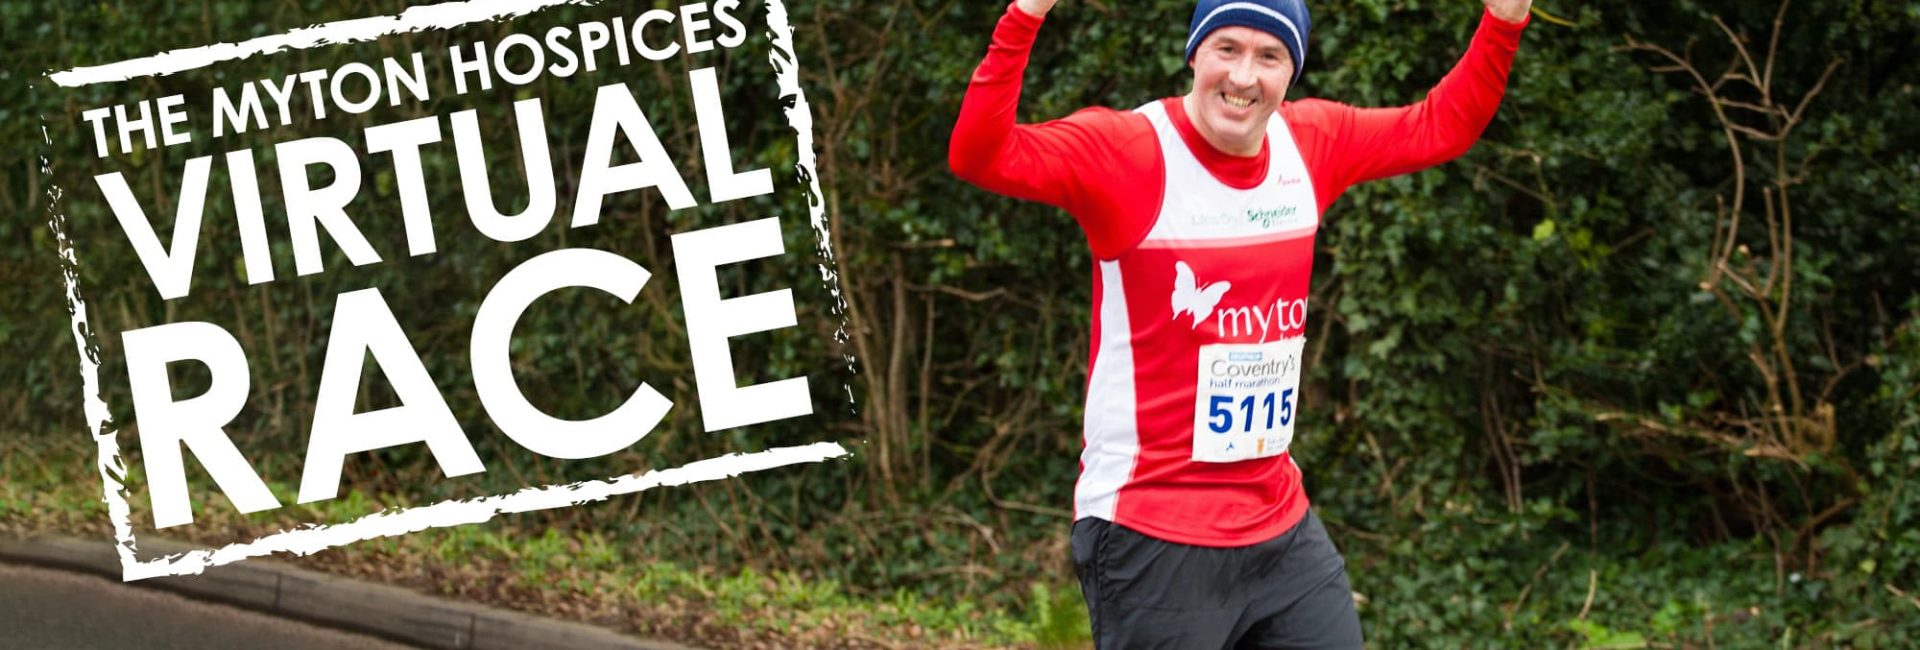 The Myton Hospices Virtual Race Channel Image Warwick Leamington Coventry Rugby Warwickshir Flex Slidere Running